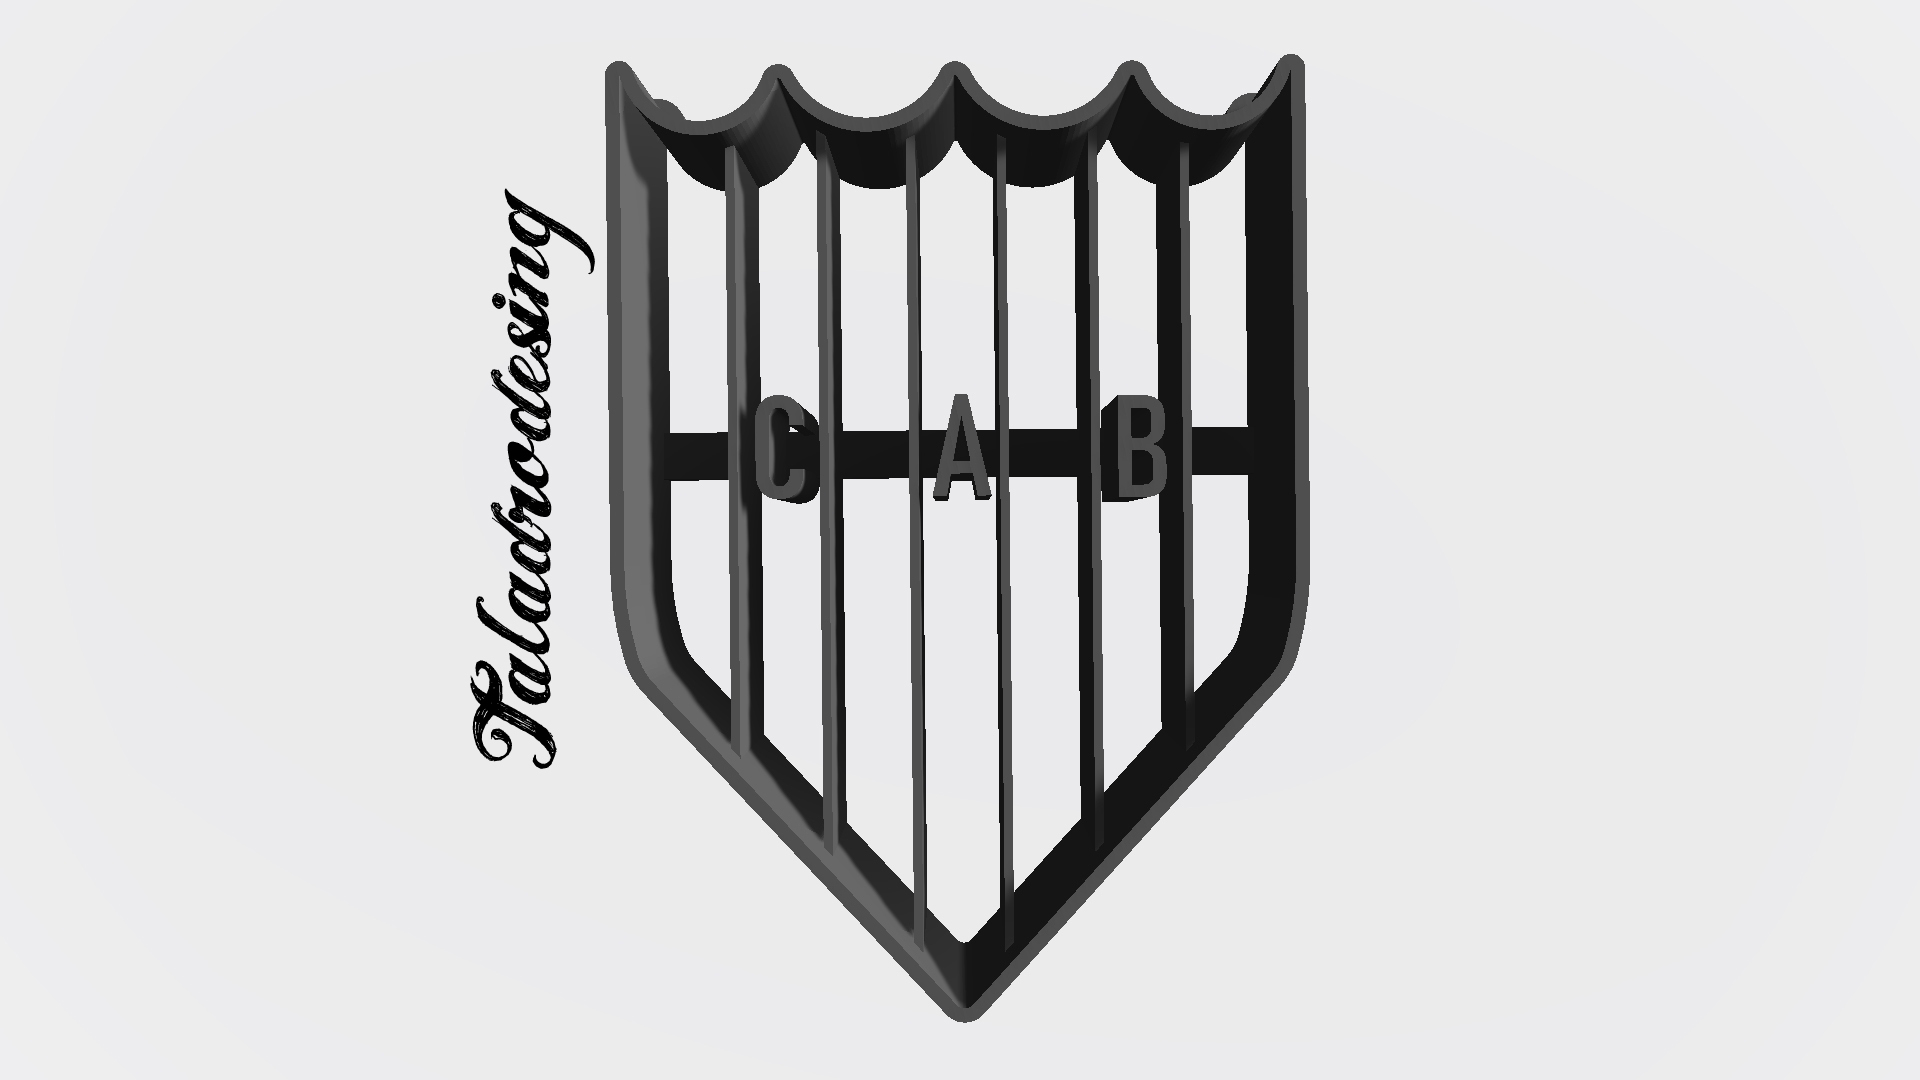 Escudo banfield copy.jpg Download free STL file Banfield Argentina Shield - Cookie Cutter • Design to 3D print, Taladrodesing